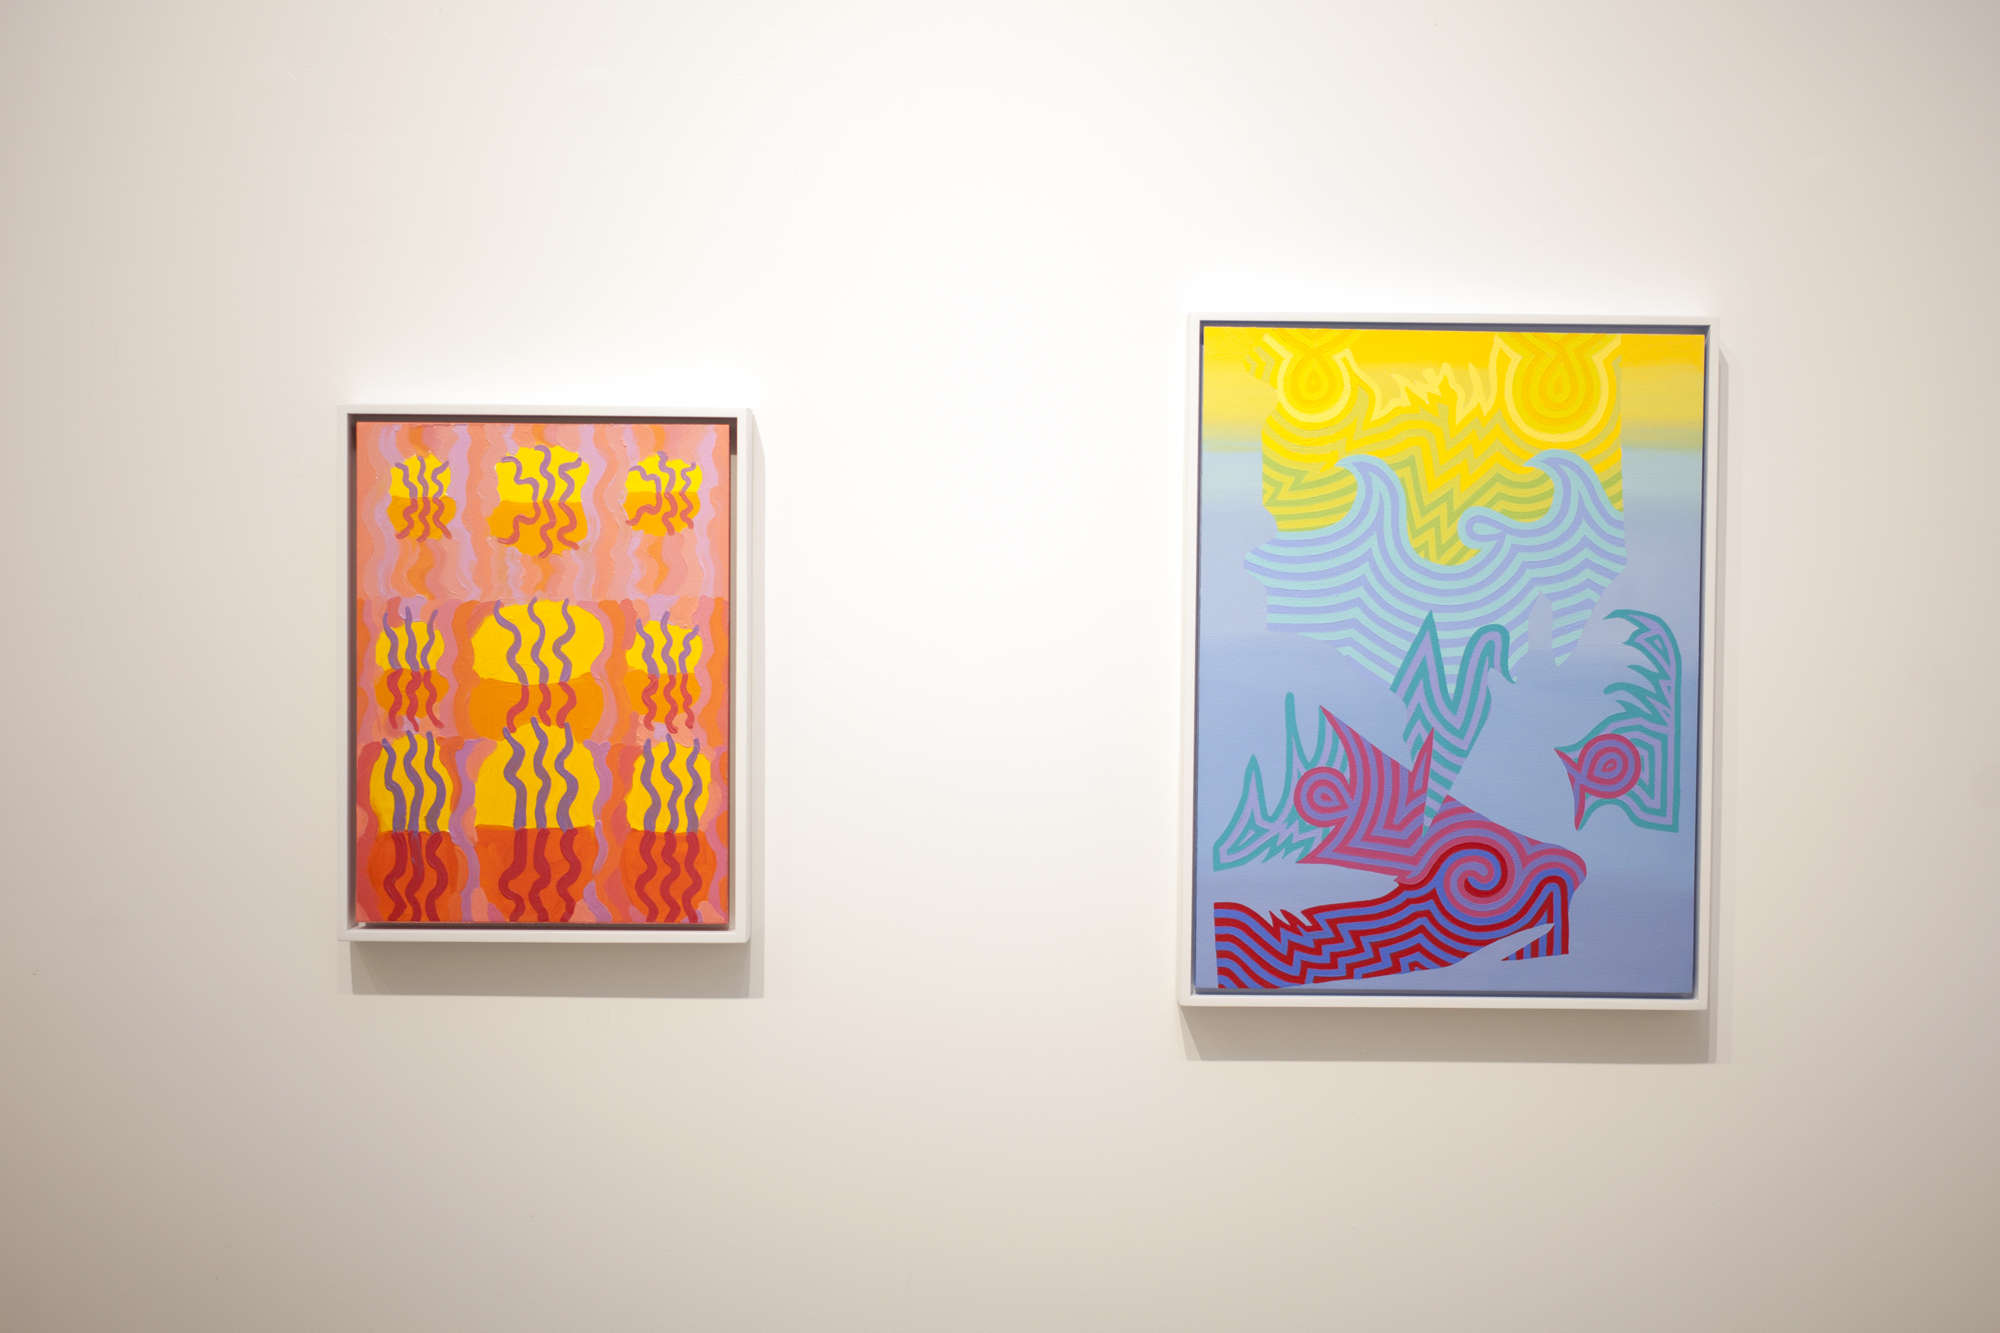 Left to right: Caetlynn Booth,  Swamp Wiggle Study , 2017, oil on paper, 13 x 10 inches framed Caetlynn Booth,  Sunrise Study 5 , 2019, oil on paper, 17 x 13 inches framed